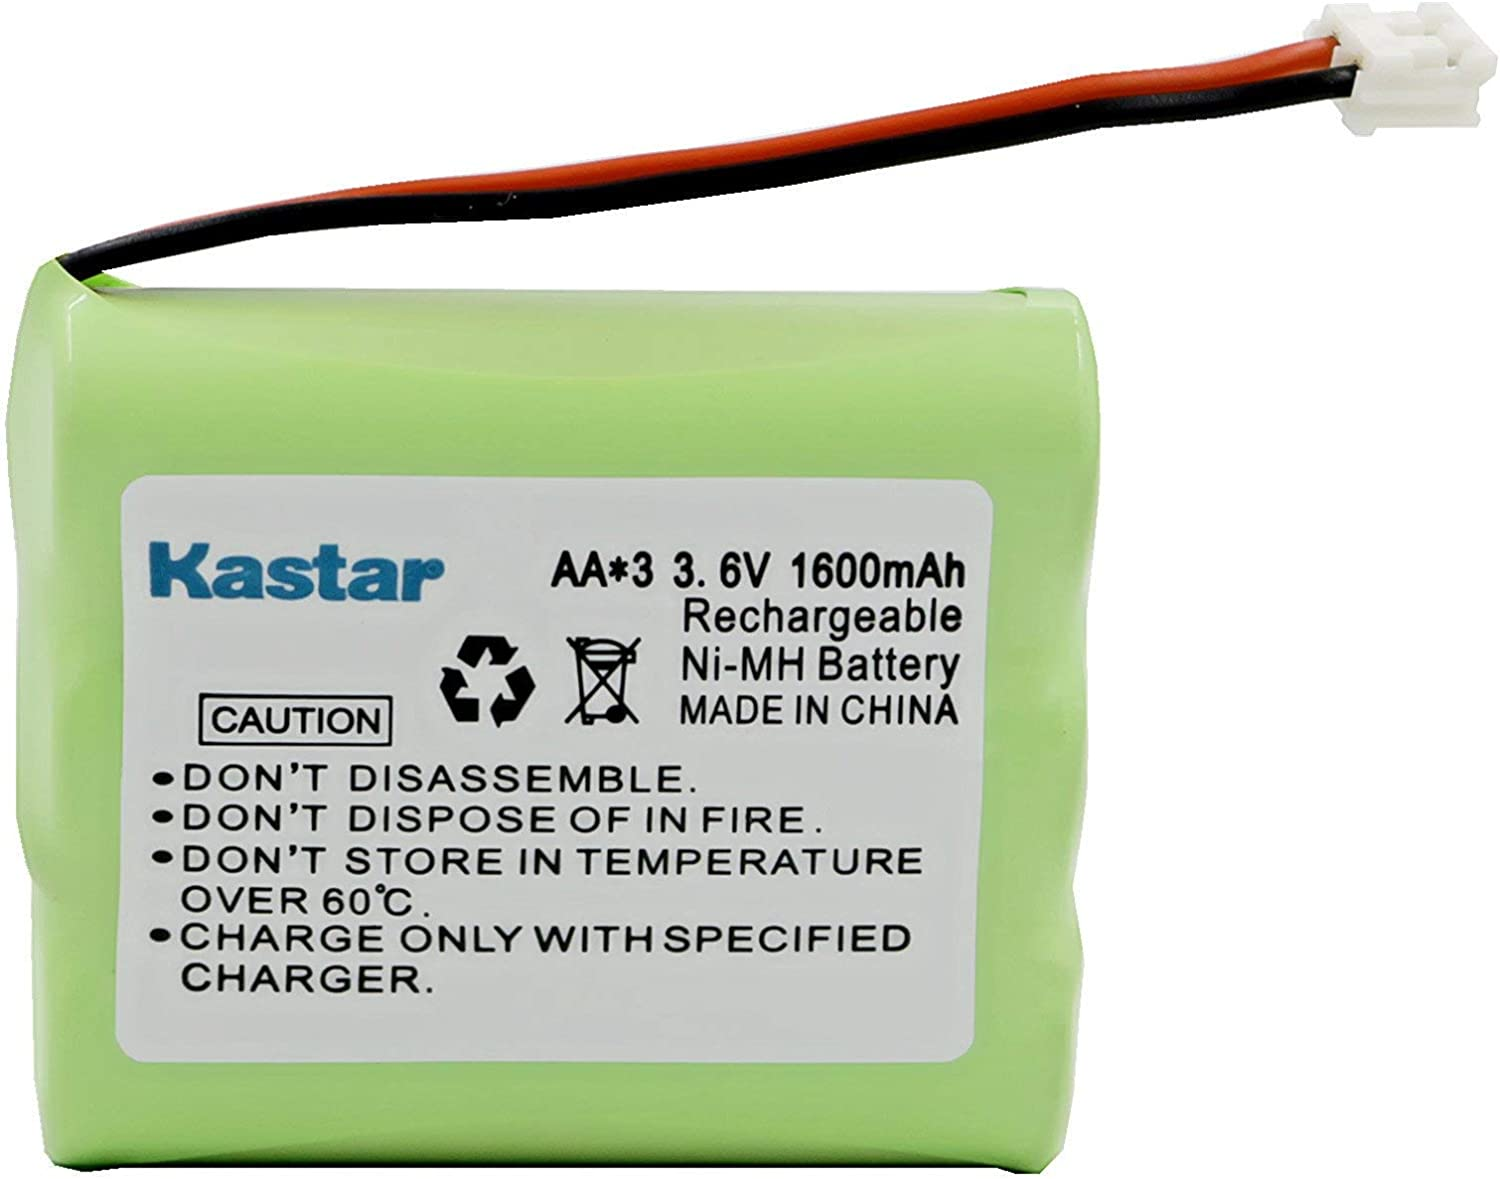 Kastar Rechargeable Cordless Phone Battery Replacement for Vtech 80-5071-00-00 ia5874 ia5876, ia5877, ia5879, AT&T E5909 E5945 9370 9371 9410 9465